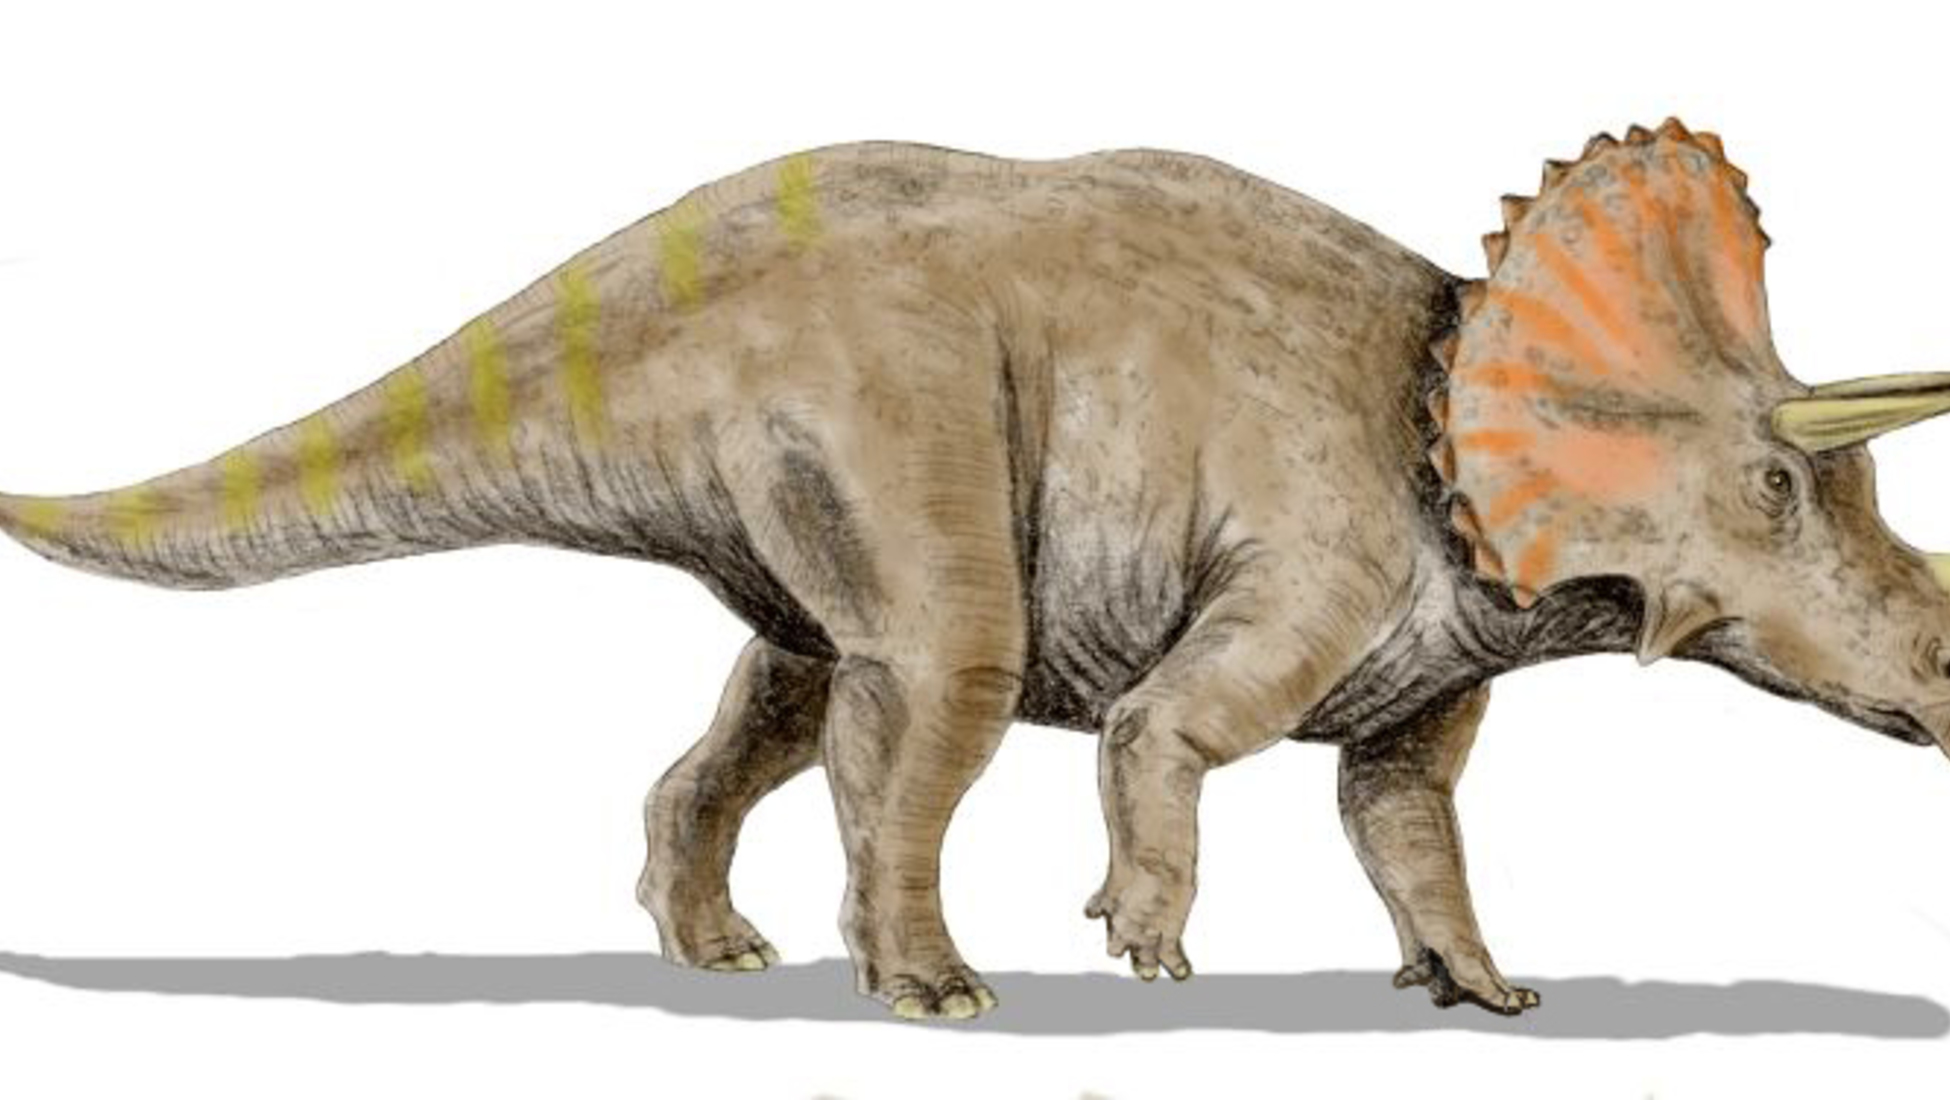 an introduction to the fossilized story of mr allosaurus Introduction the prehistoric reptiles known as dinosaurs arose during the middle to late triassic period of the mesozoic era, some 230 million years ago  since then, dinosaur fossils have .